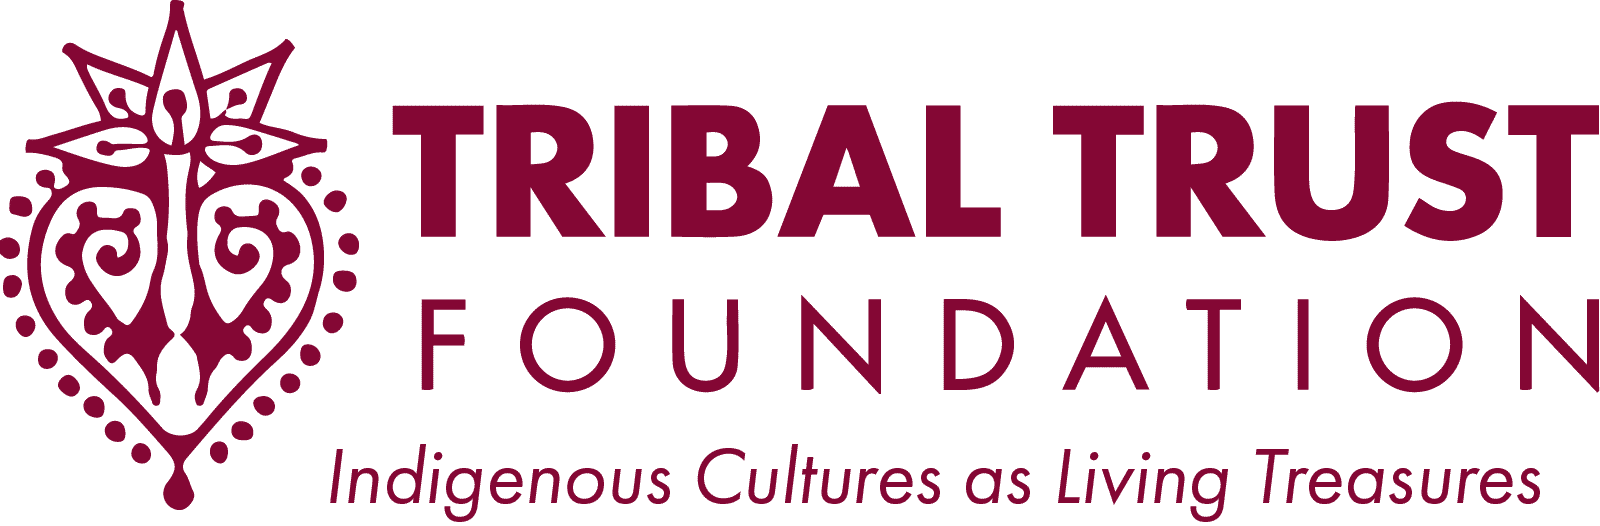 Tribal Trust Foundation logo